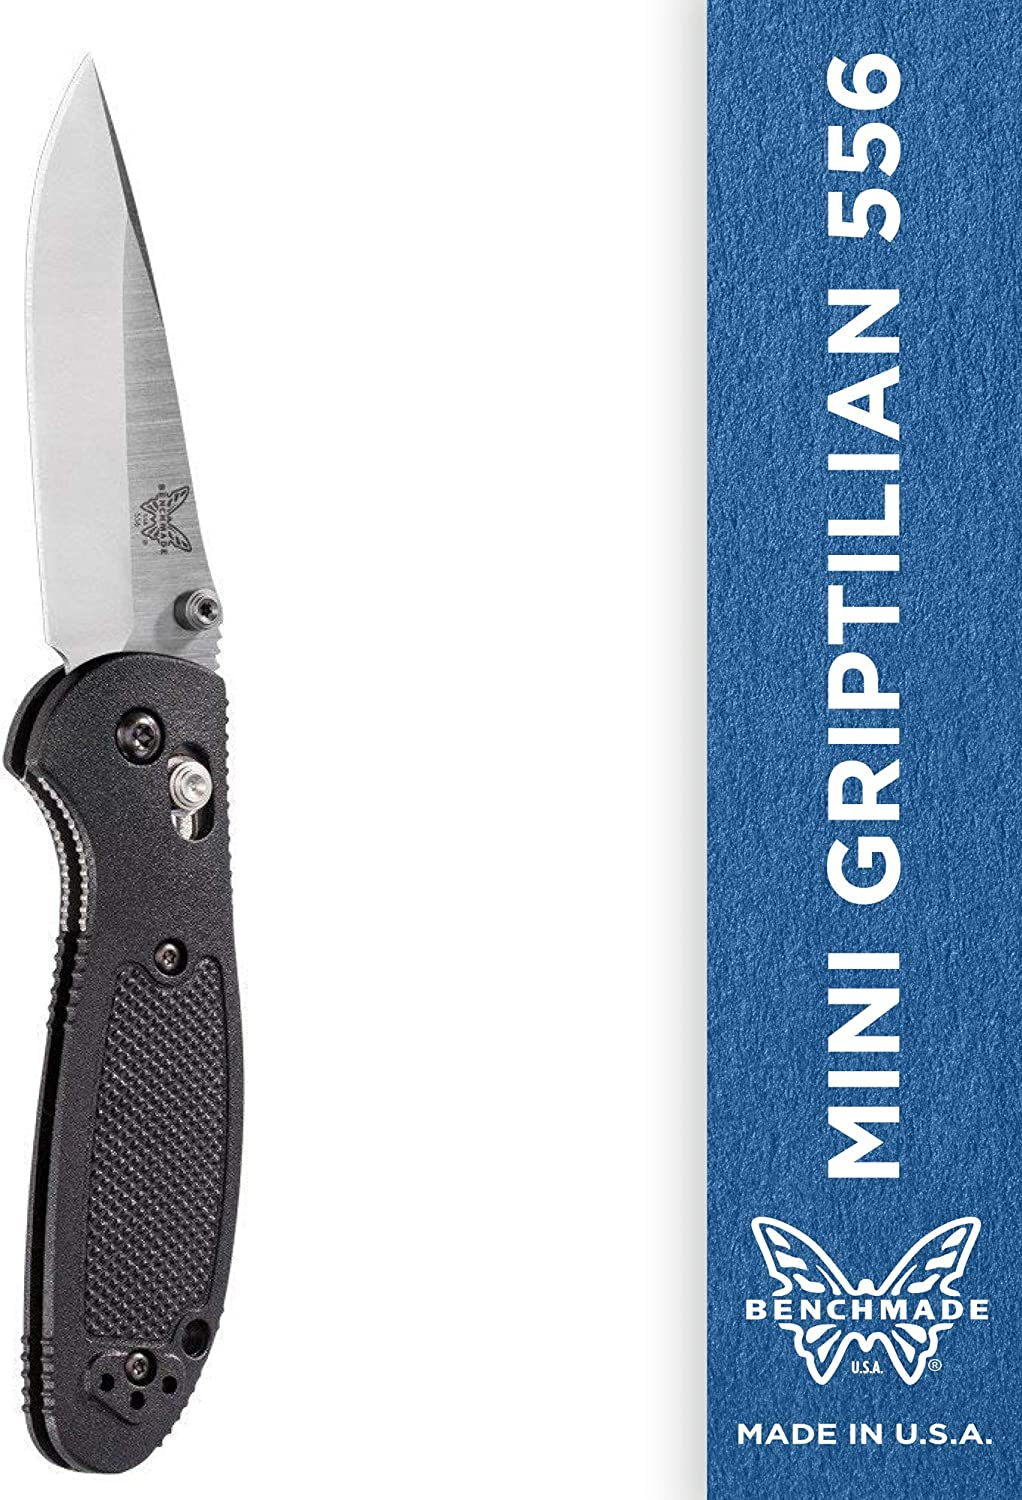 Benchmade - Mini Griptilian 556 EDC Manual Open Folding Knife Made in USA